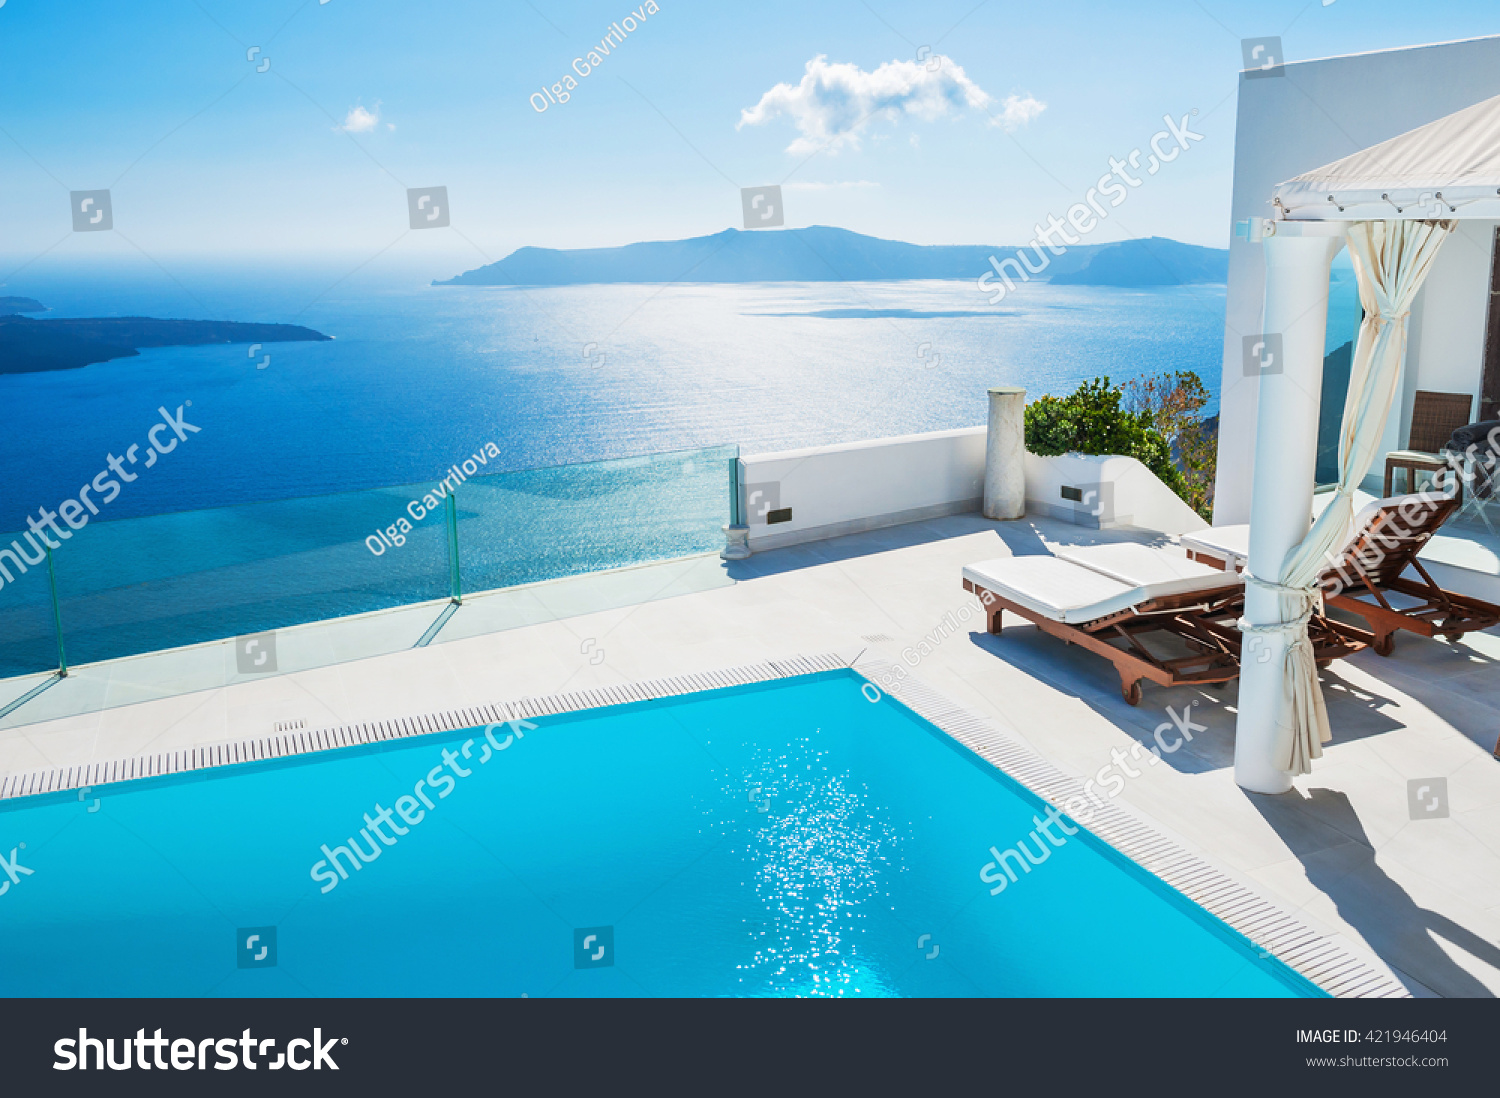 Santorini island, Greece #421946404